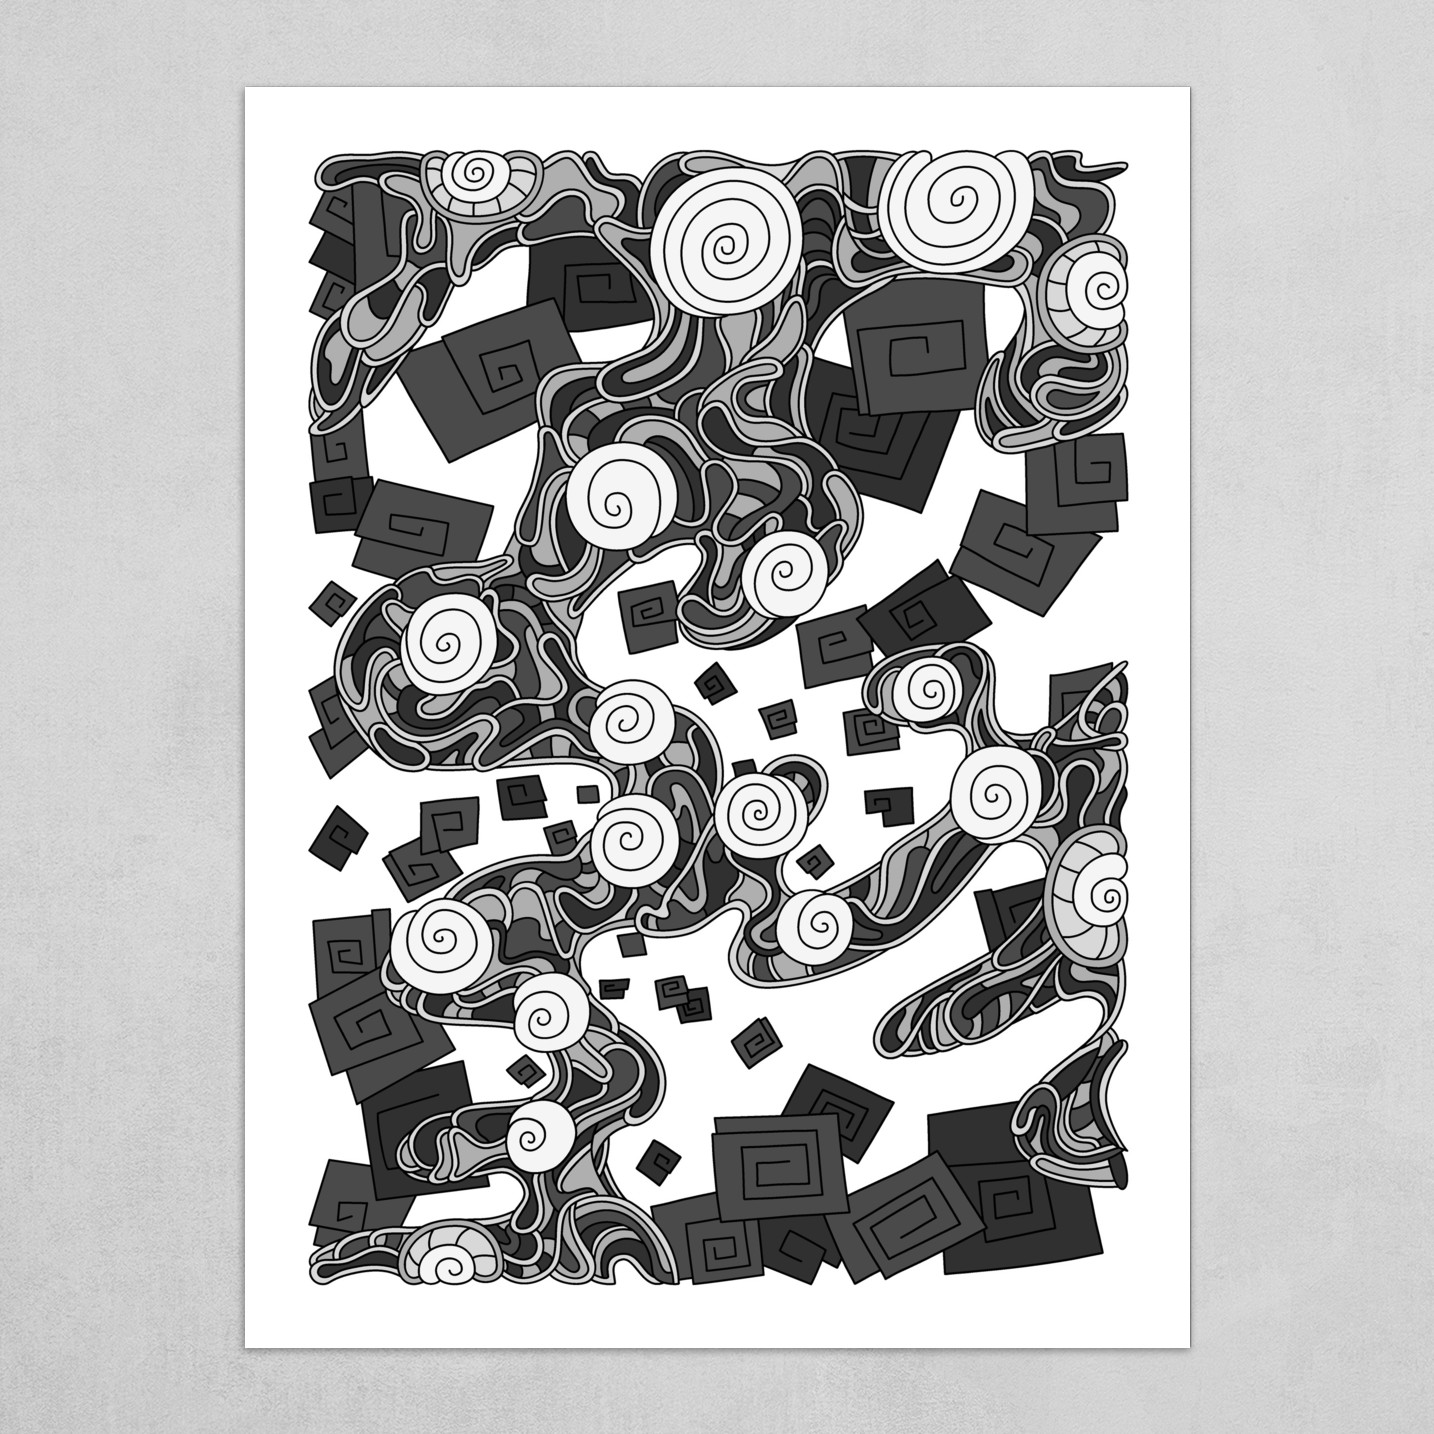 Wandering Abstract Line Art 29: Grayscale